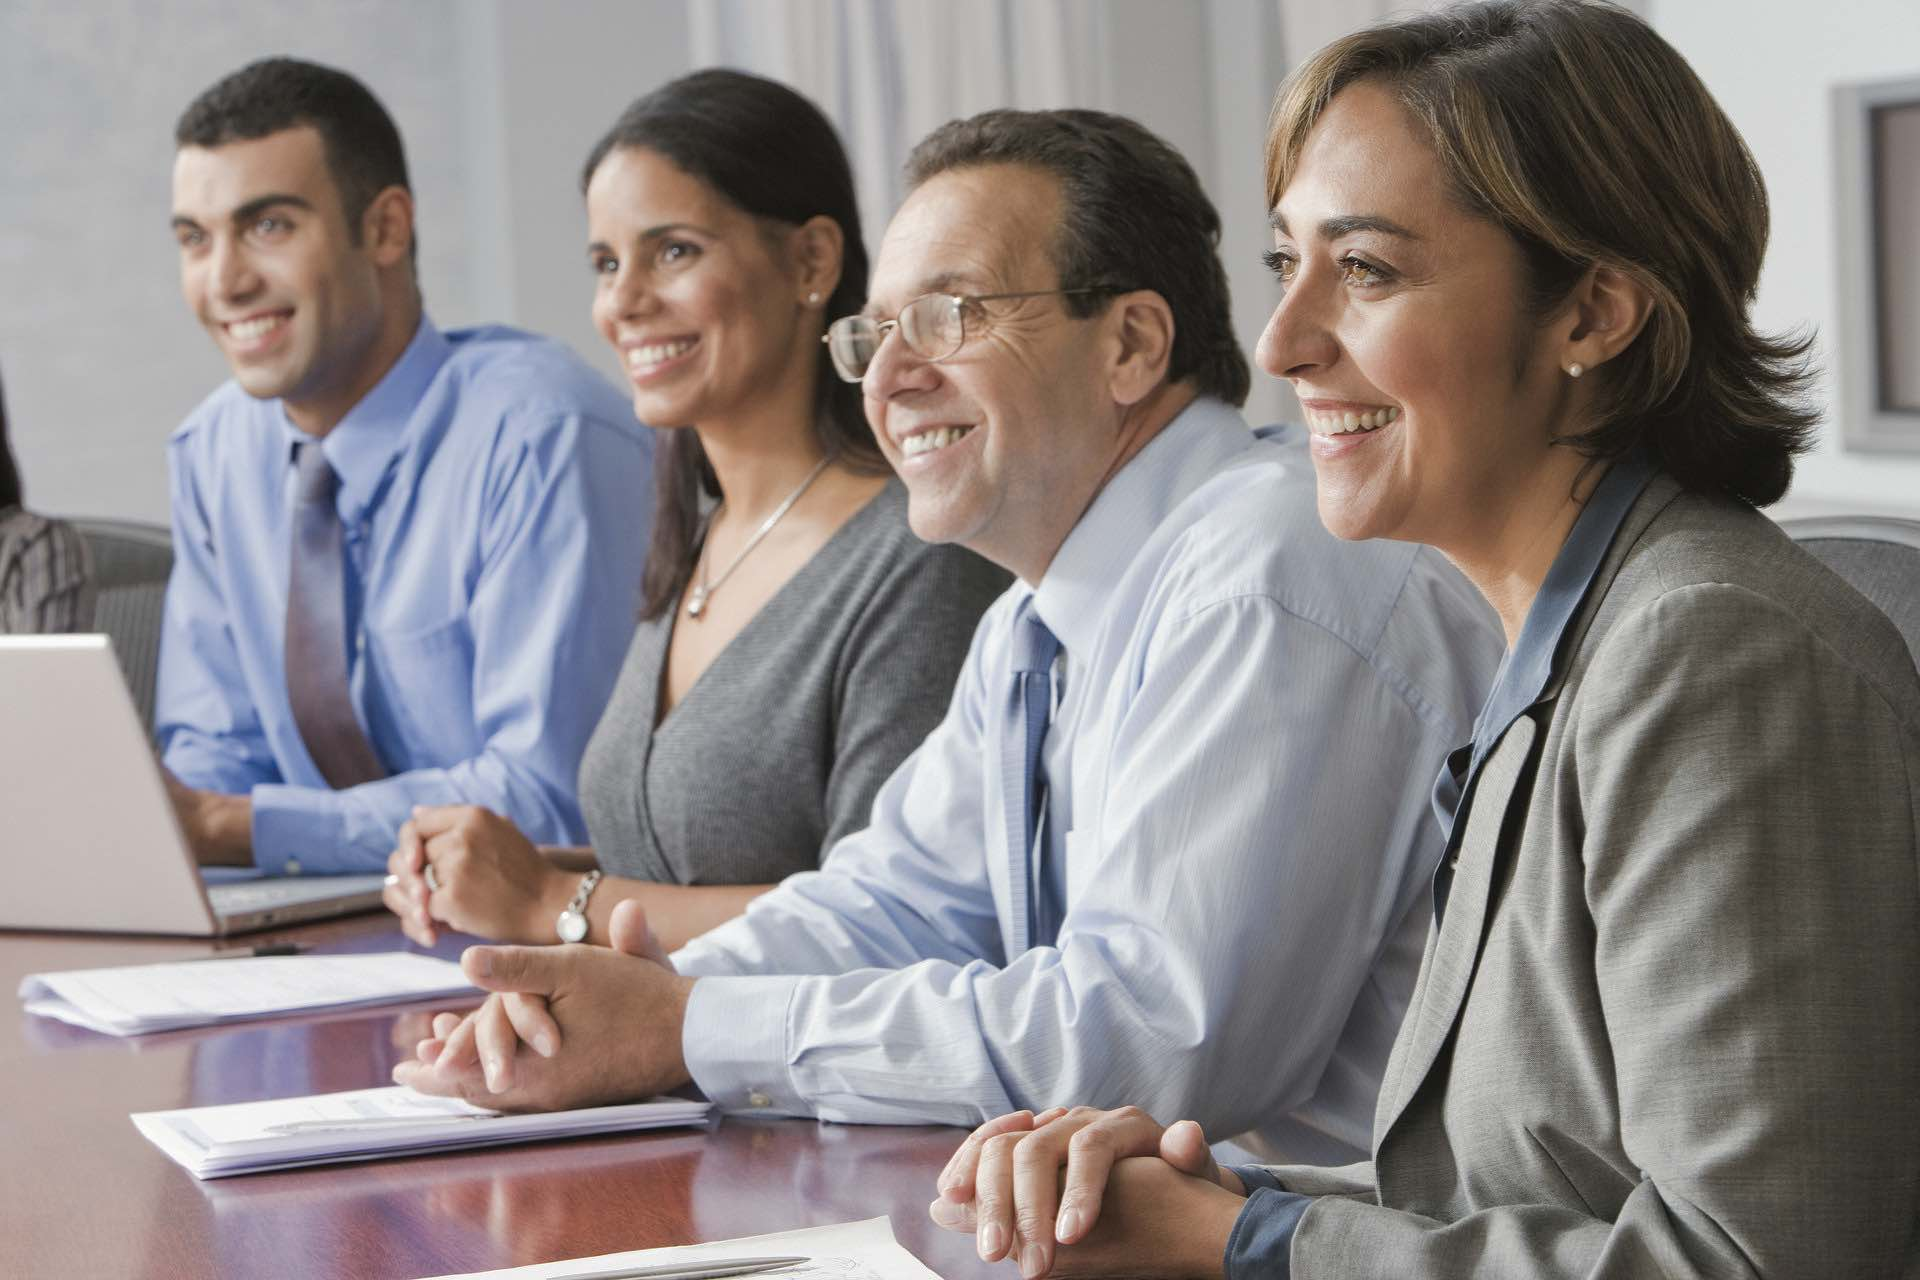 Group of business people at a conference table smiling with papers and a laptop on the Archangel Law Group website Business Law page